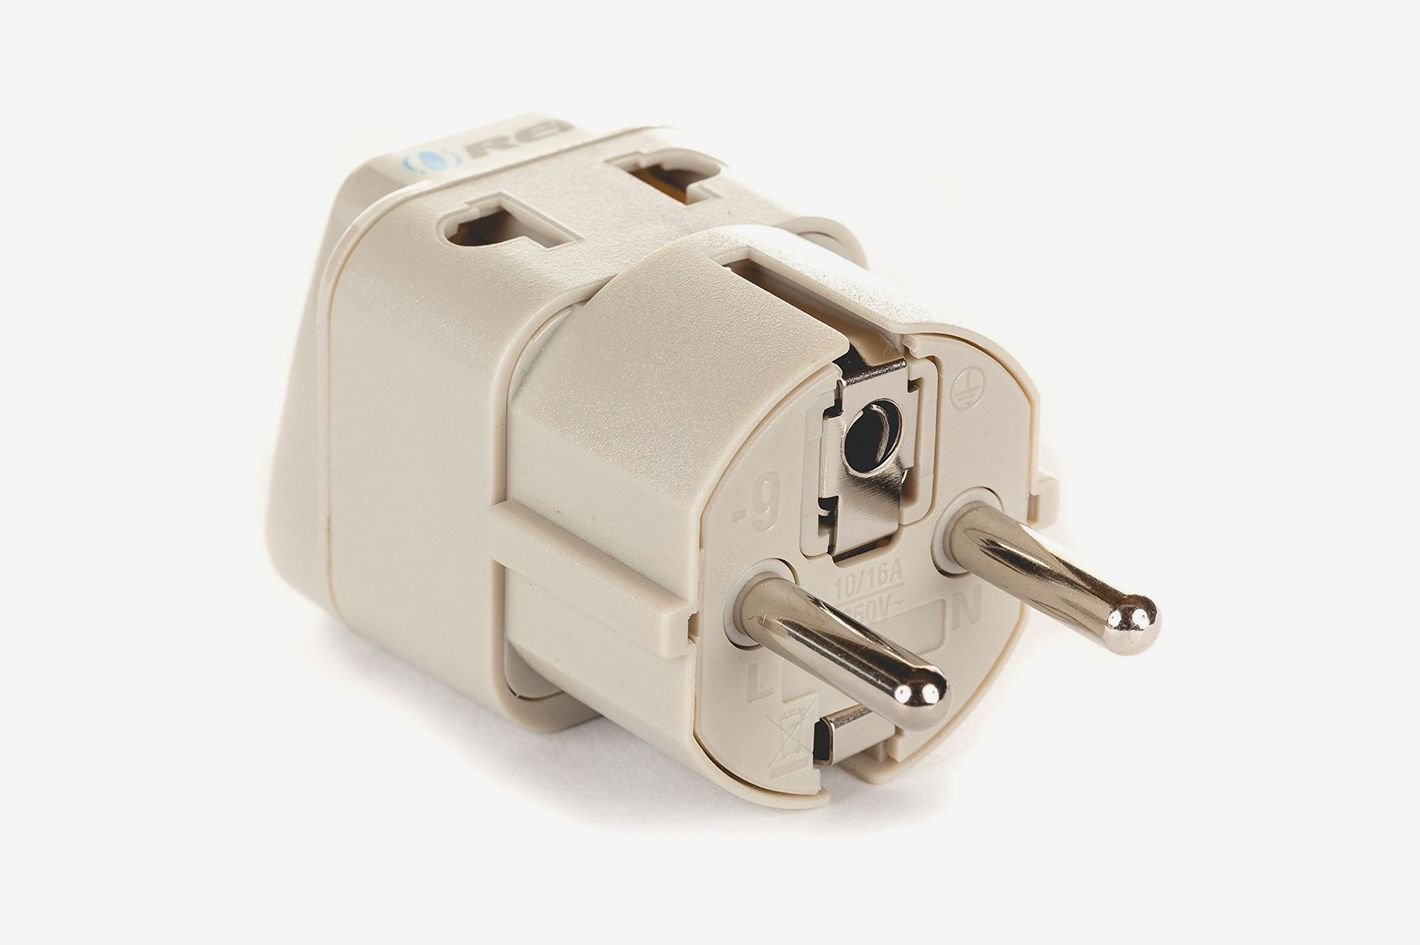 OREI European Plug Adapter Schuko Type E/F for Germany, France, Europe, Russia